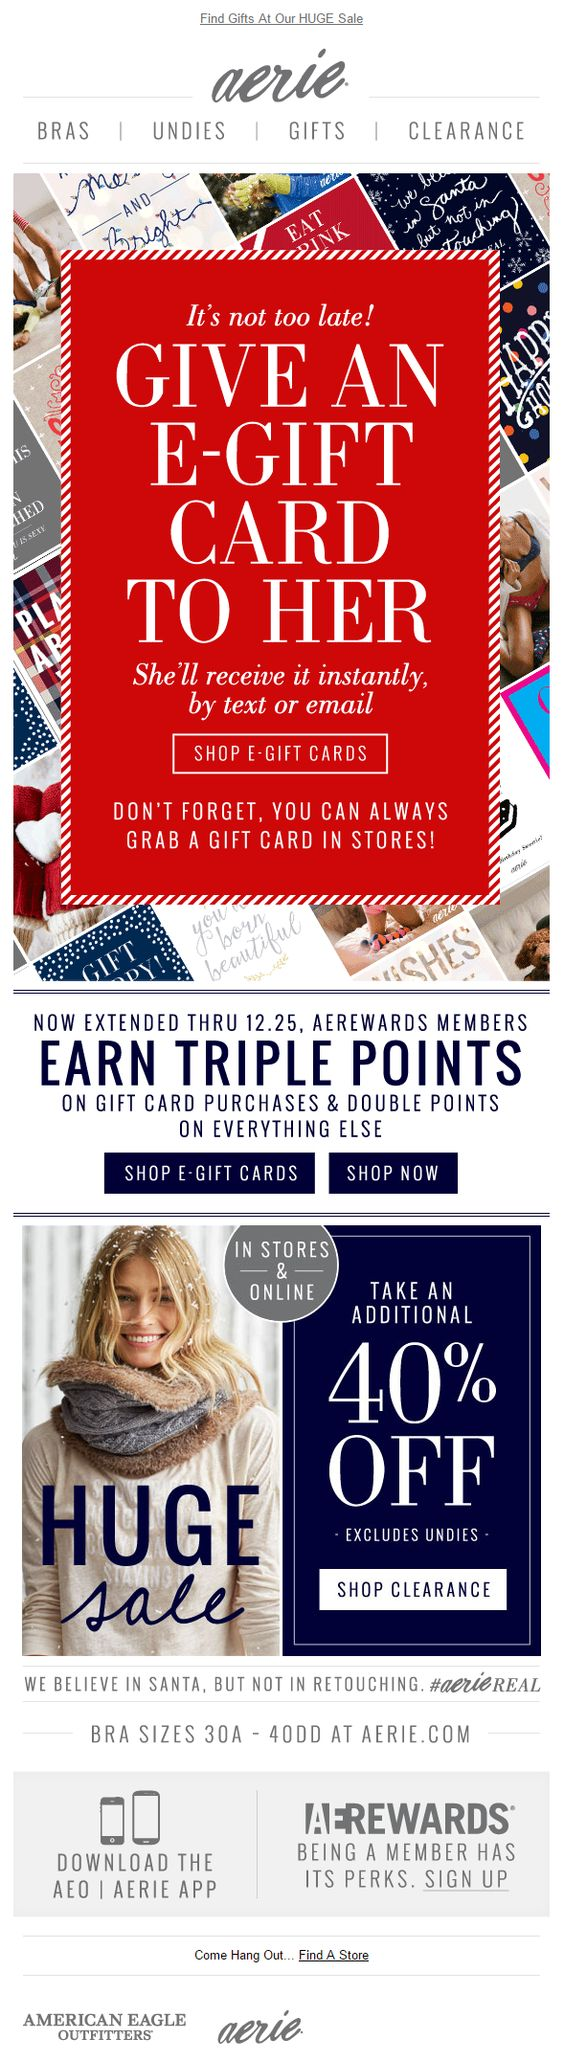 aerie email